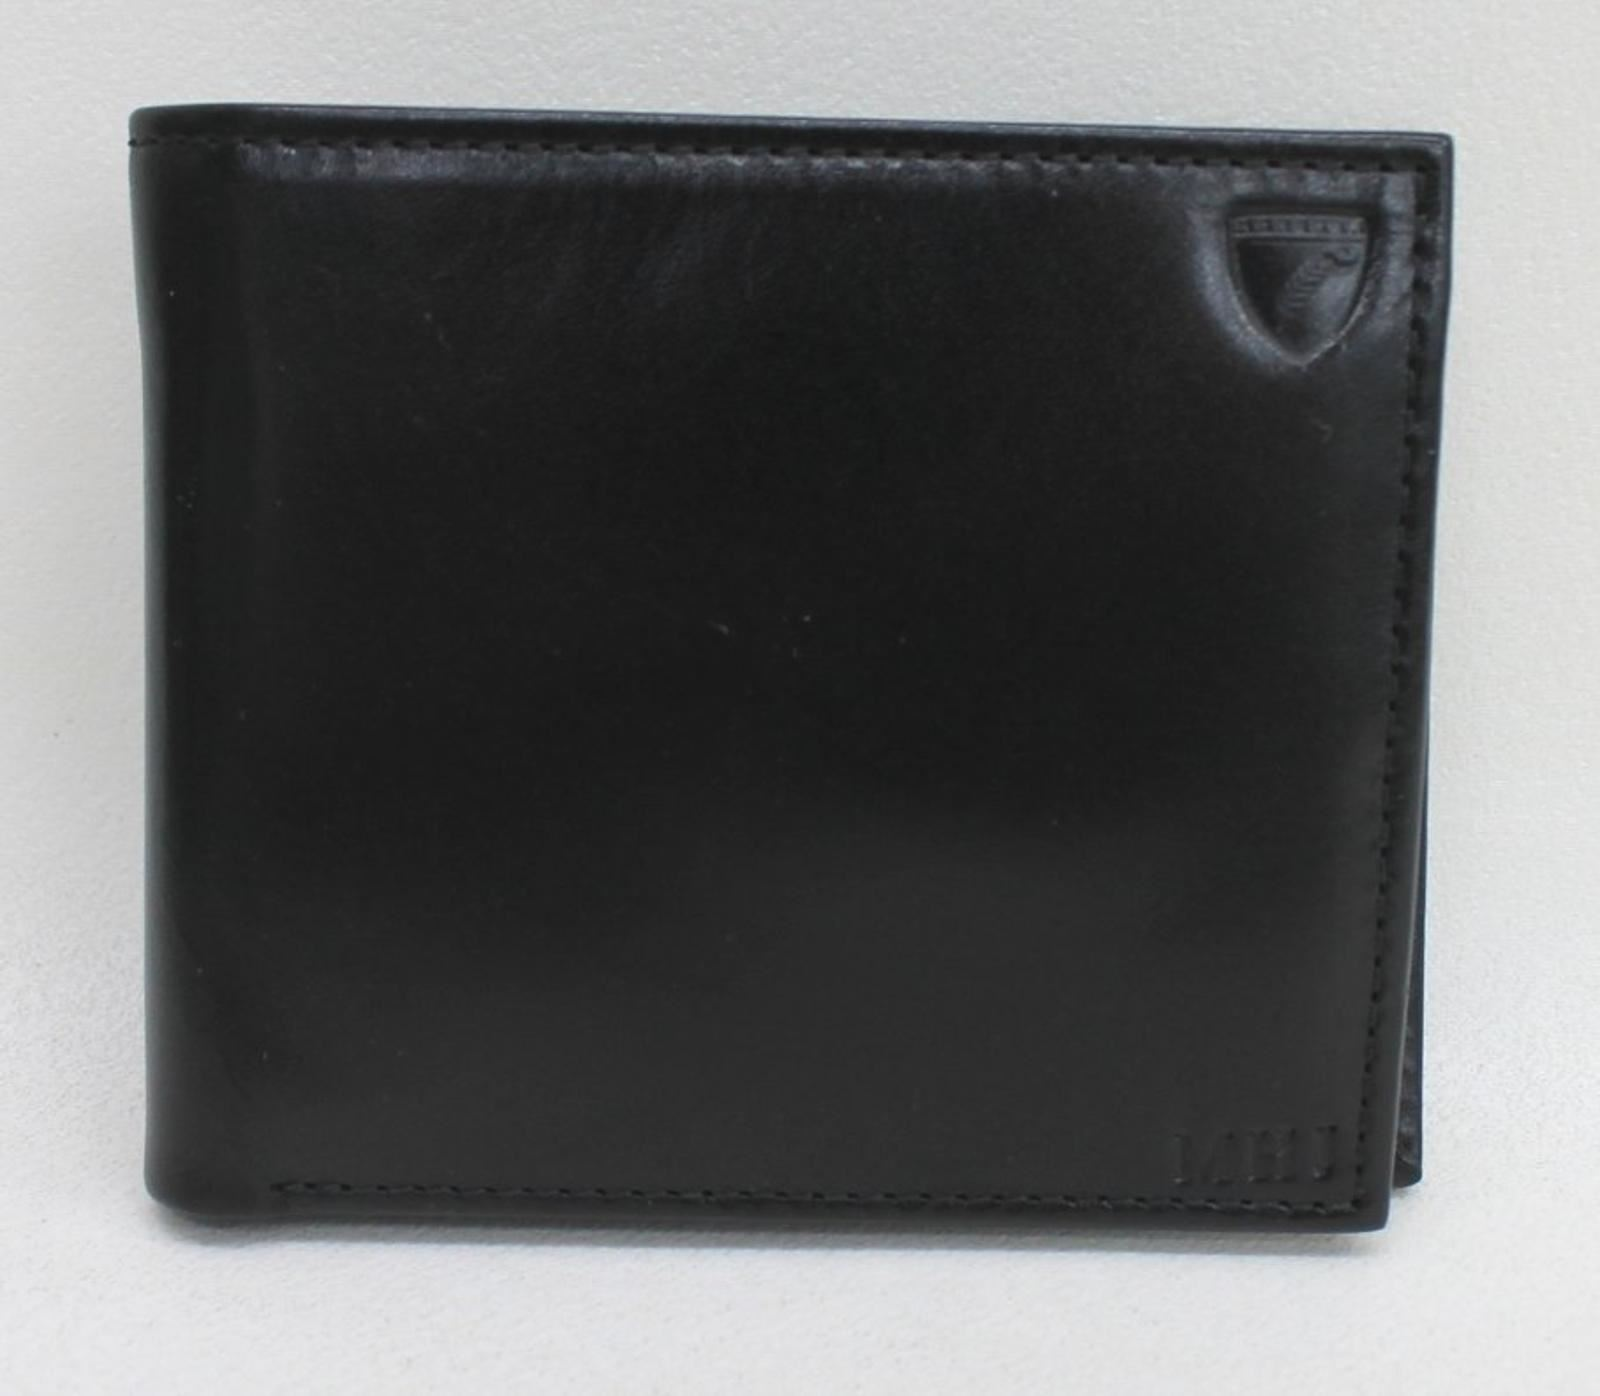 Aspinal Of London Men's Black Billfold Leather Coin Wallet Embossed Mhj New